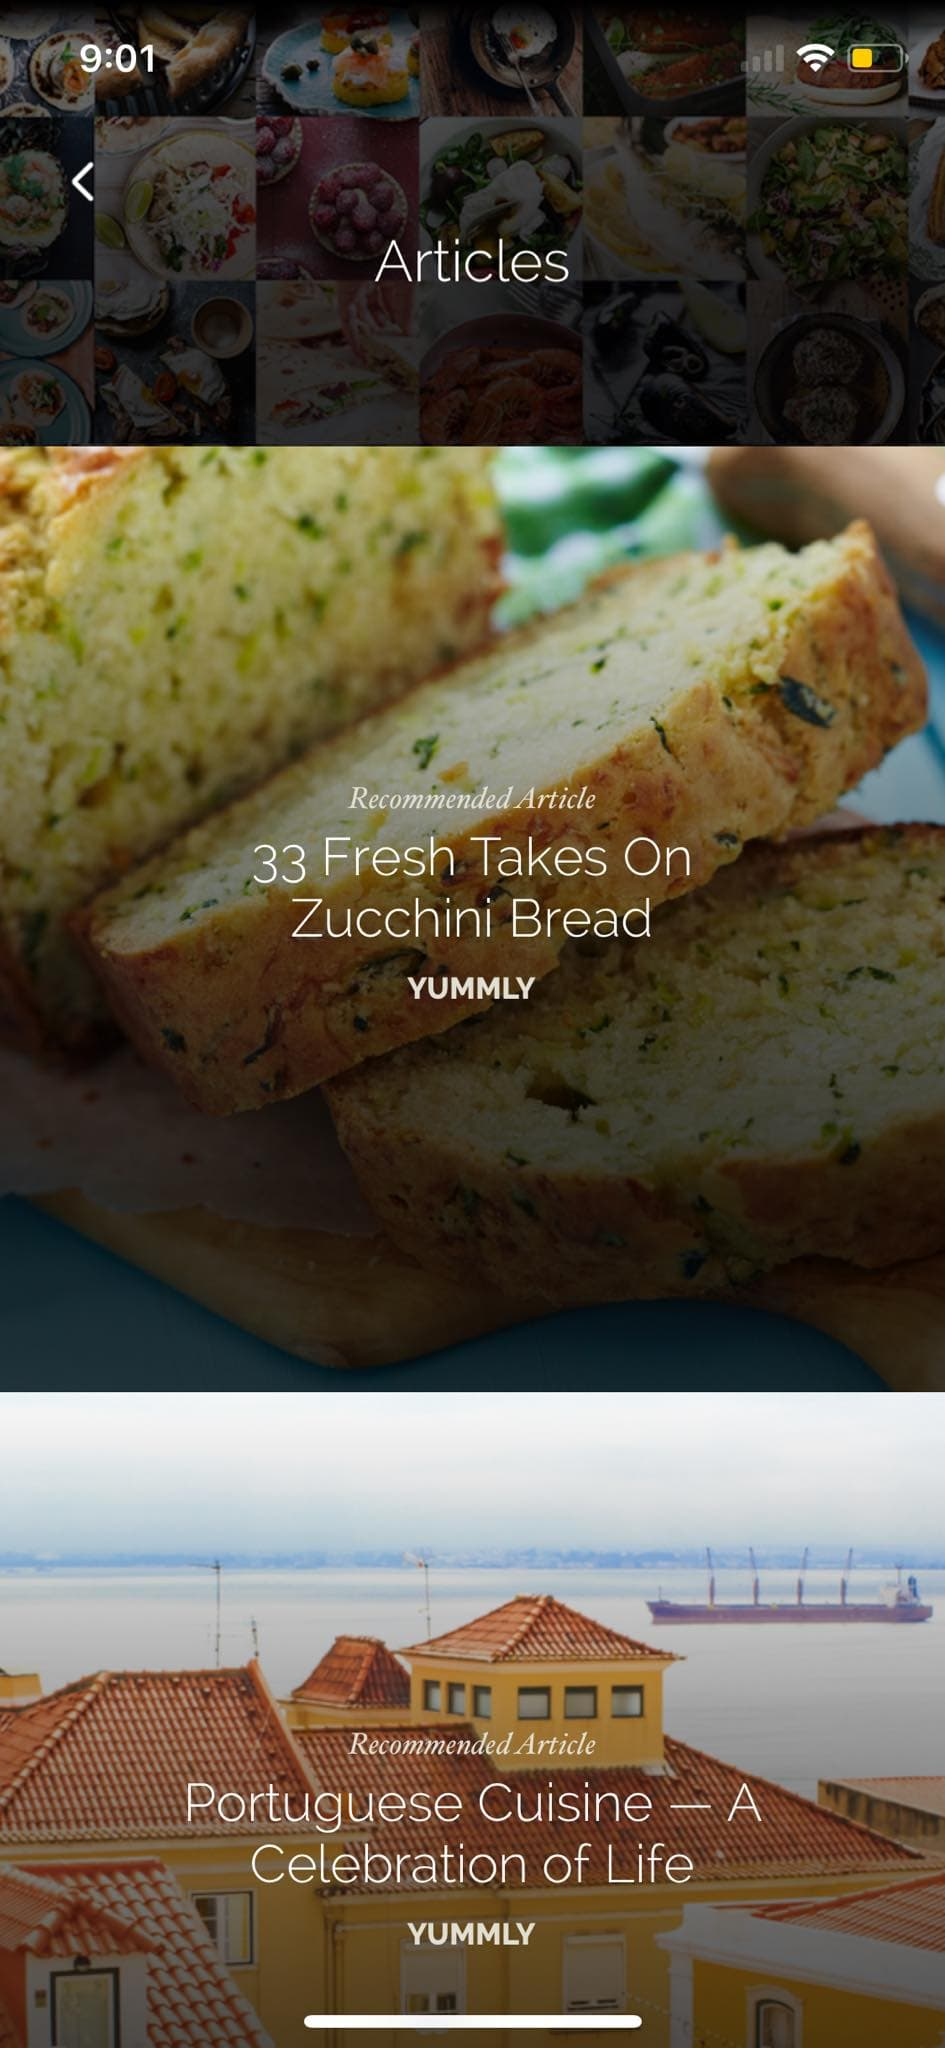 Articles on iOS by Yummly